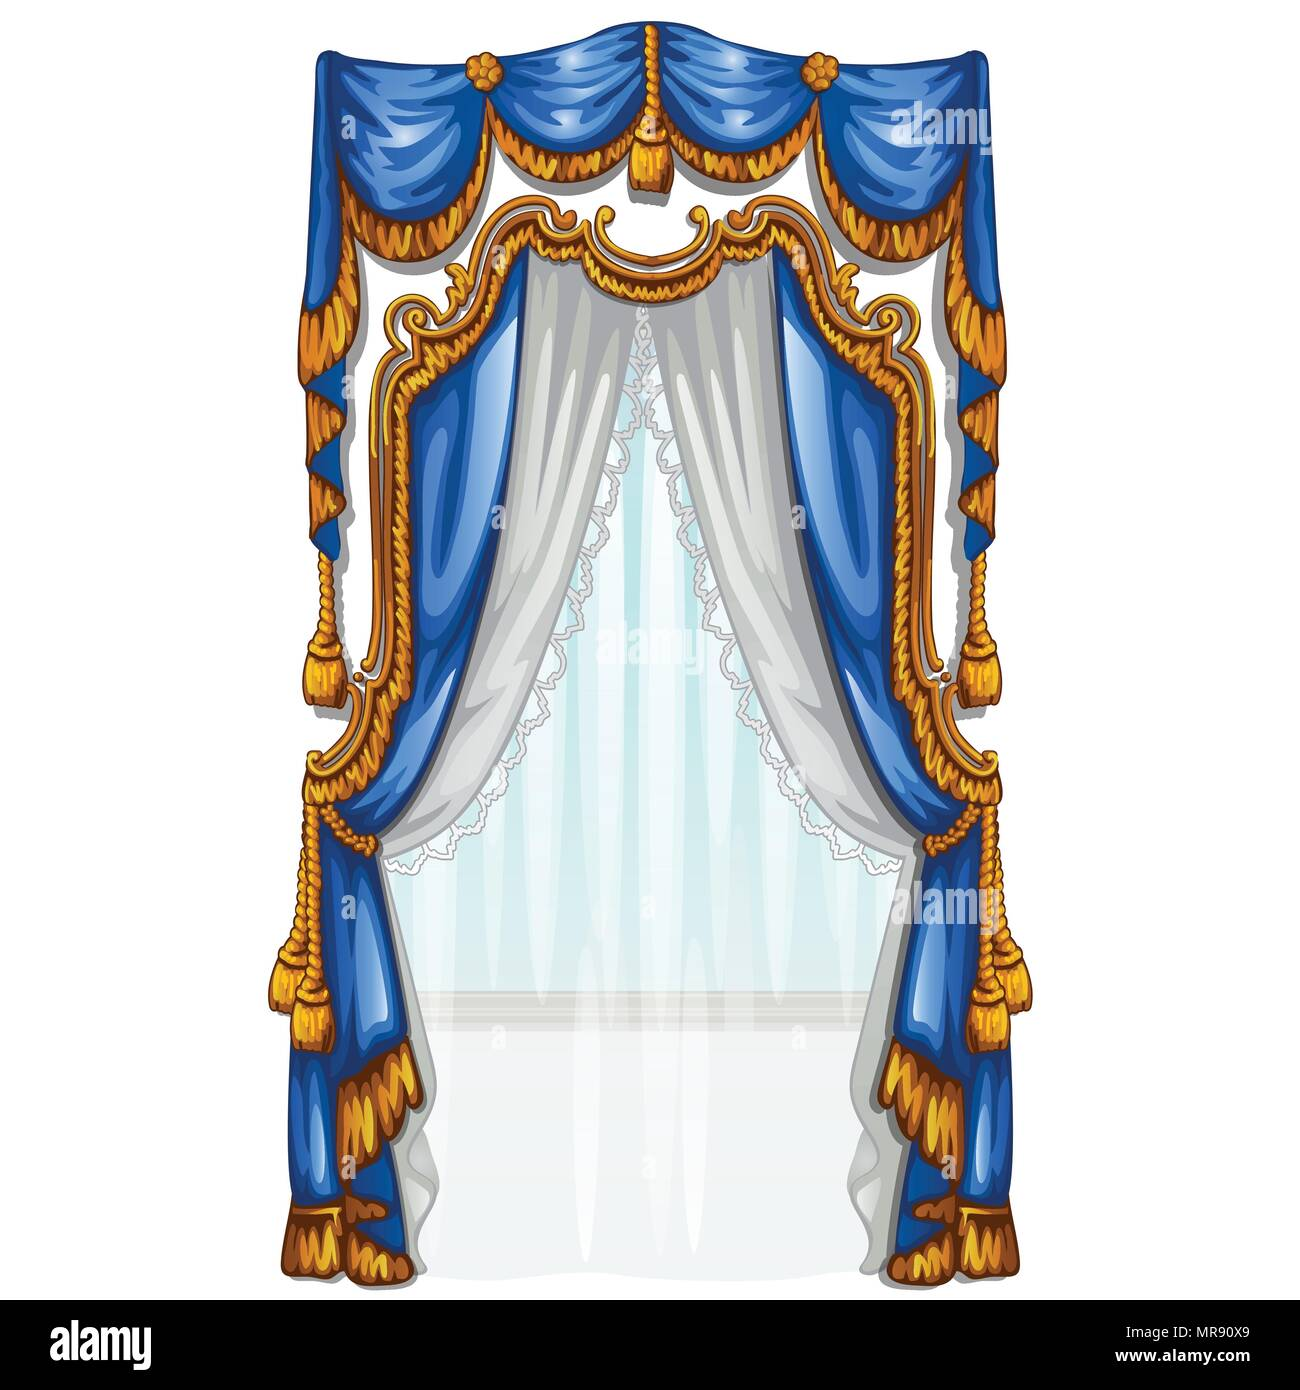 The ornate curtain in the interior. Vector illustration. Stock Vector